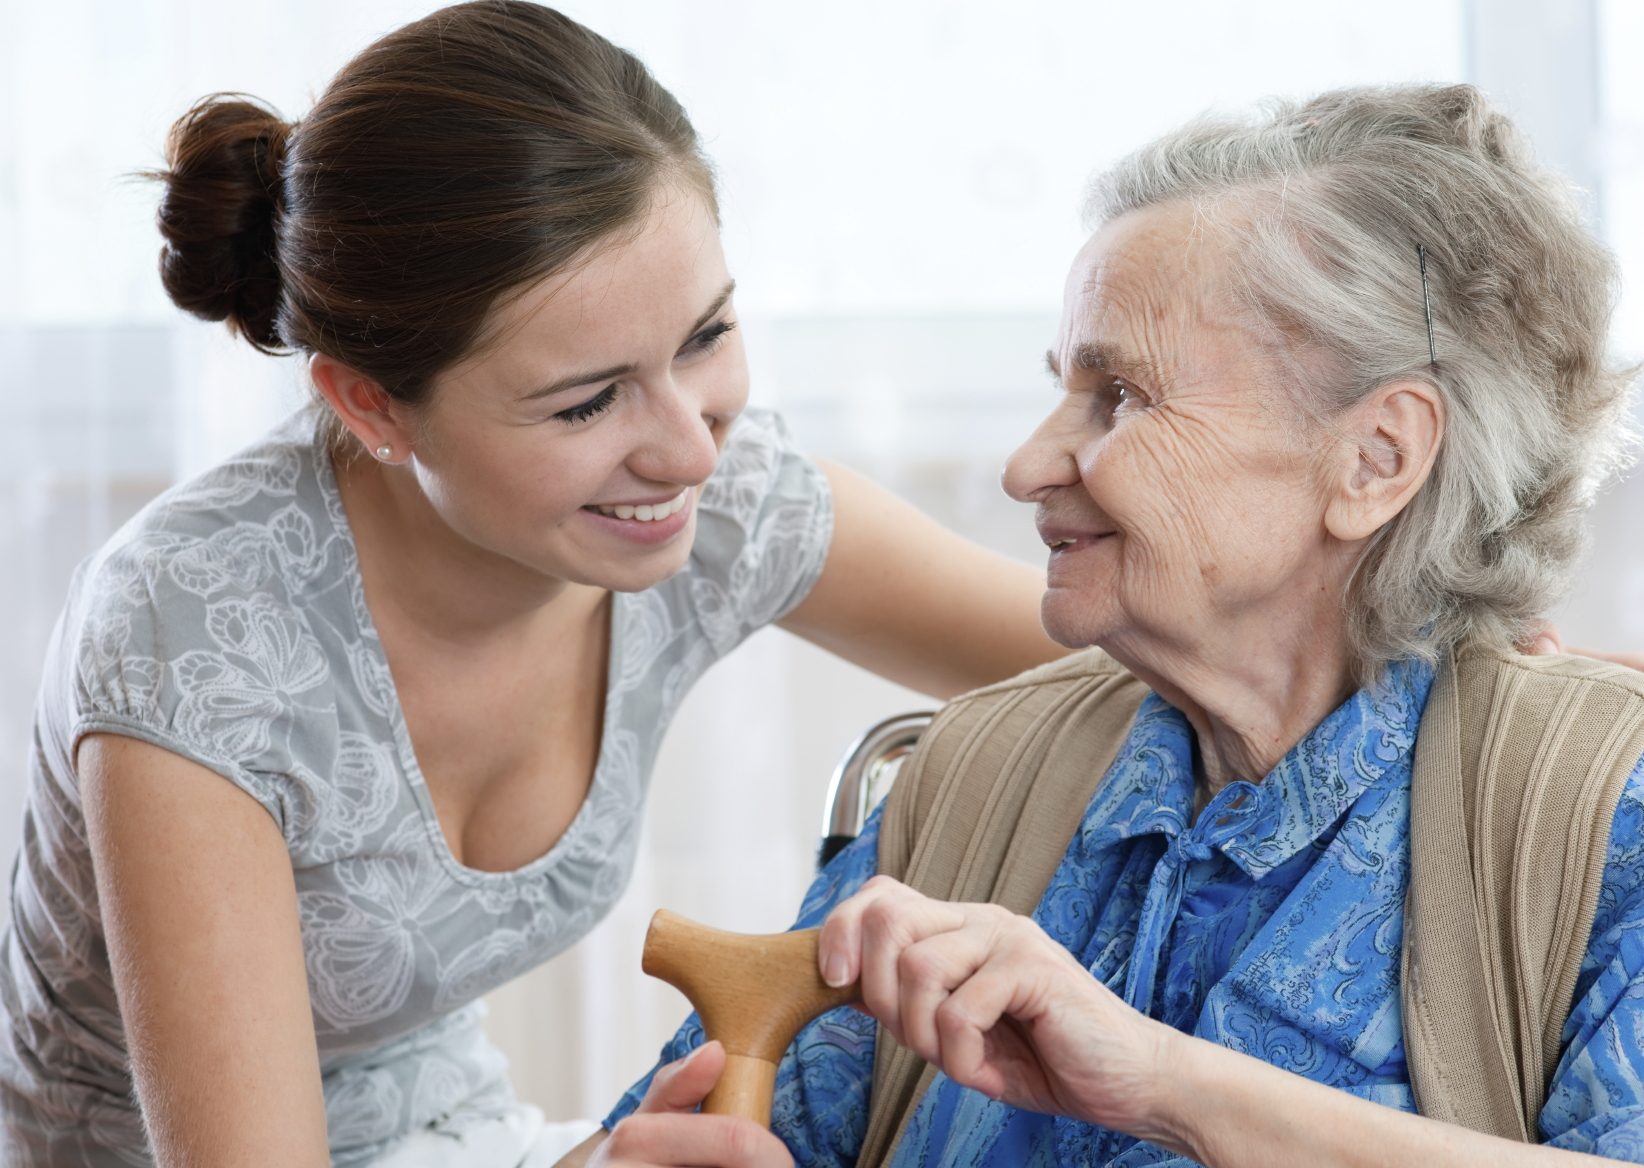 How To Find A Good Elderly Care?